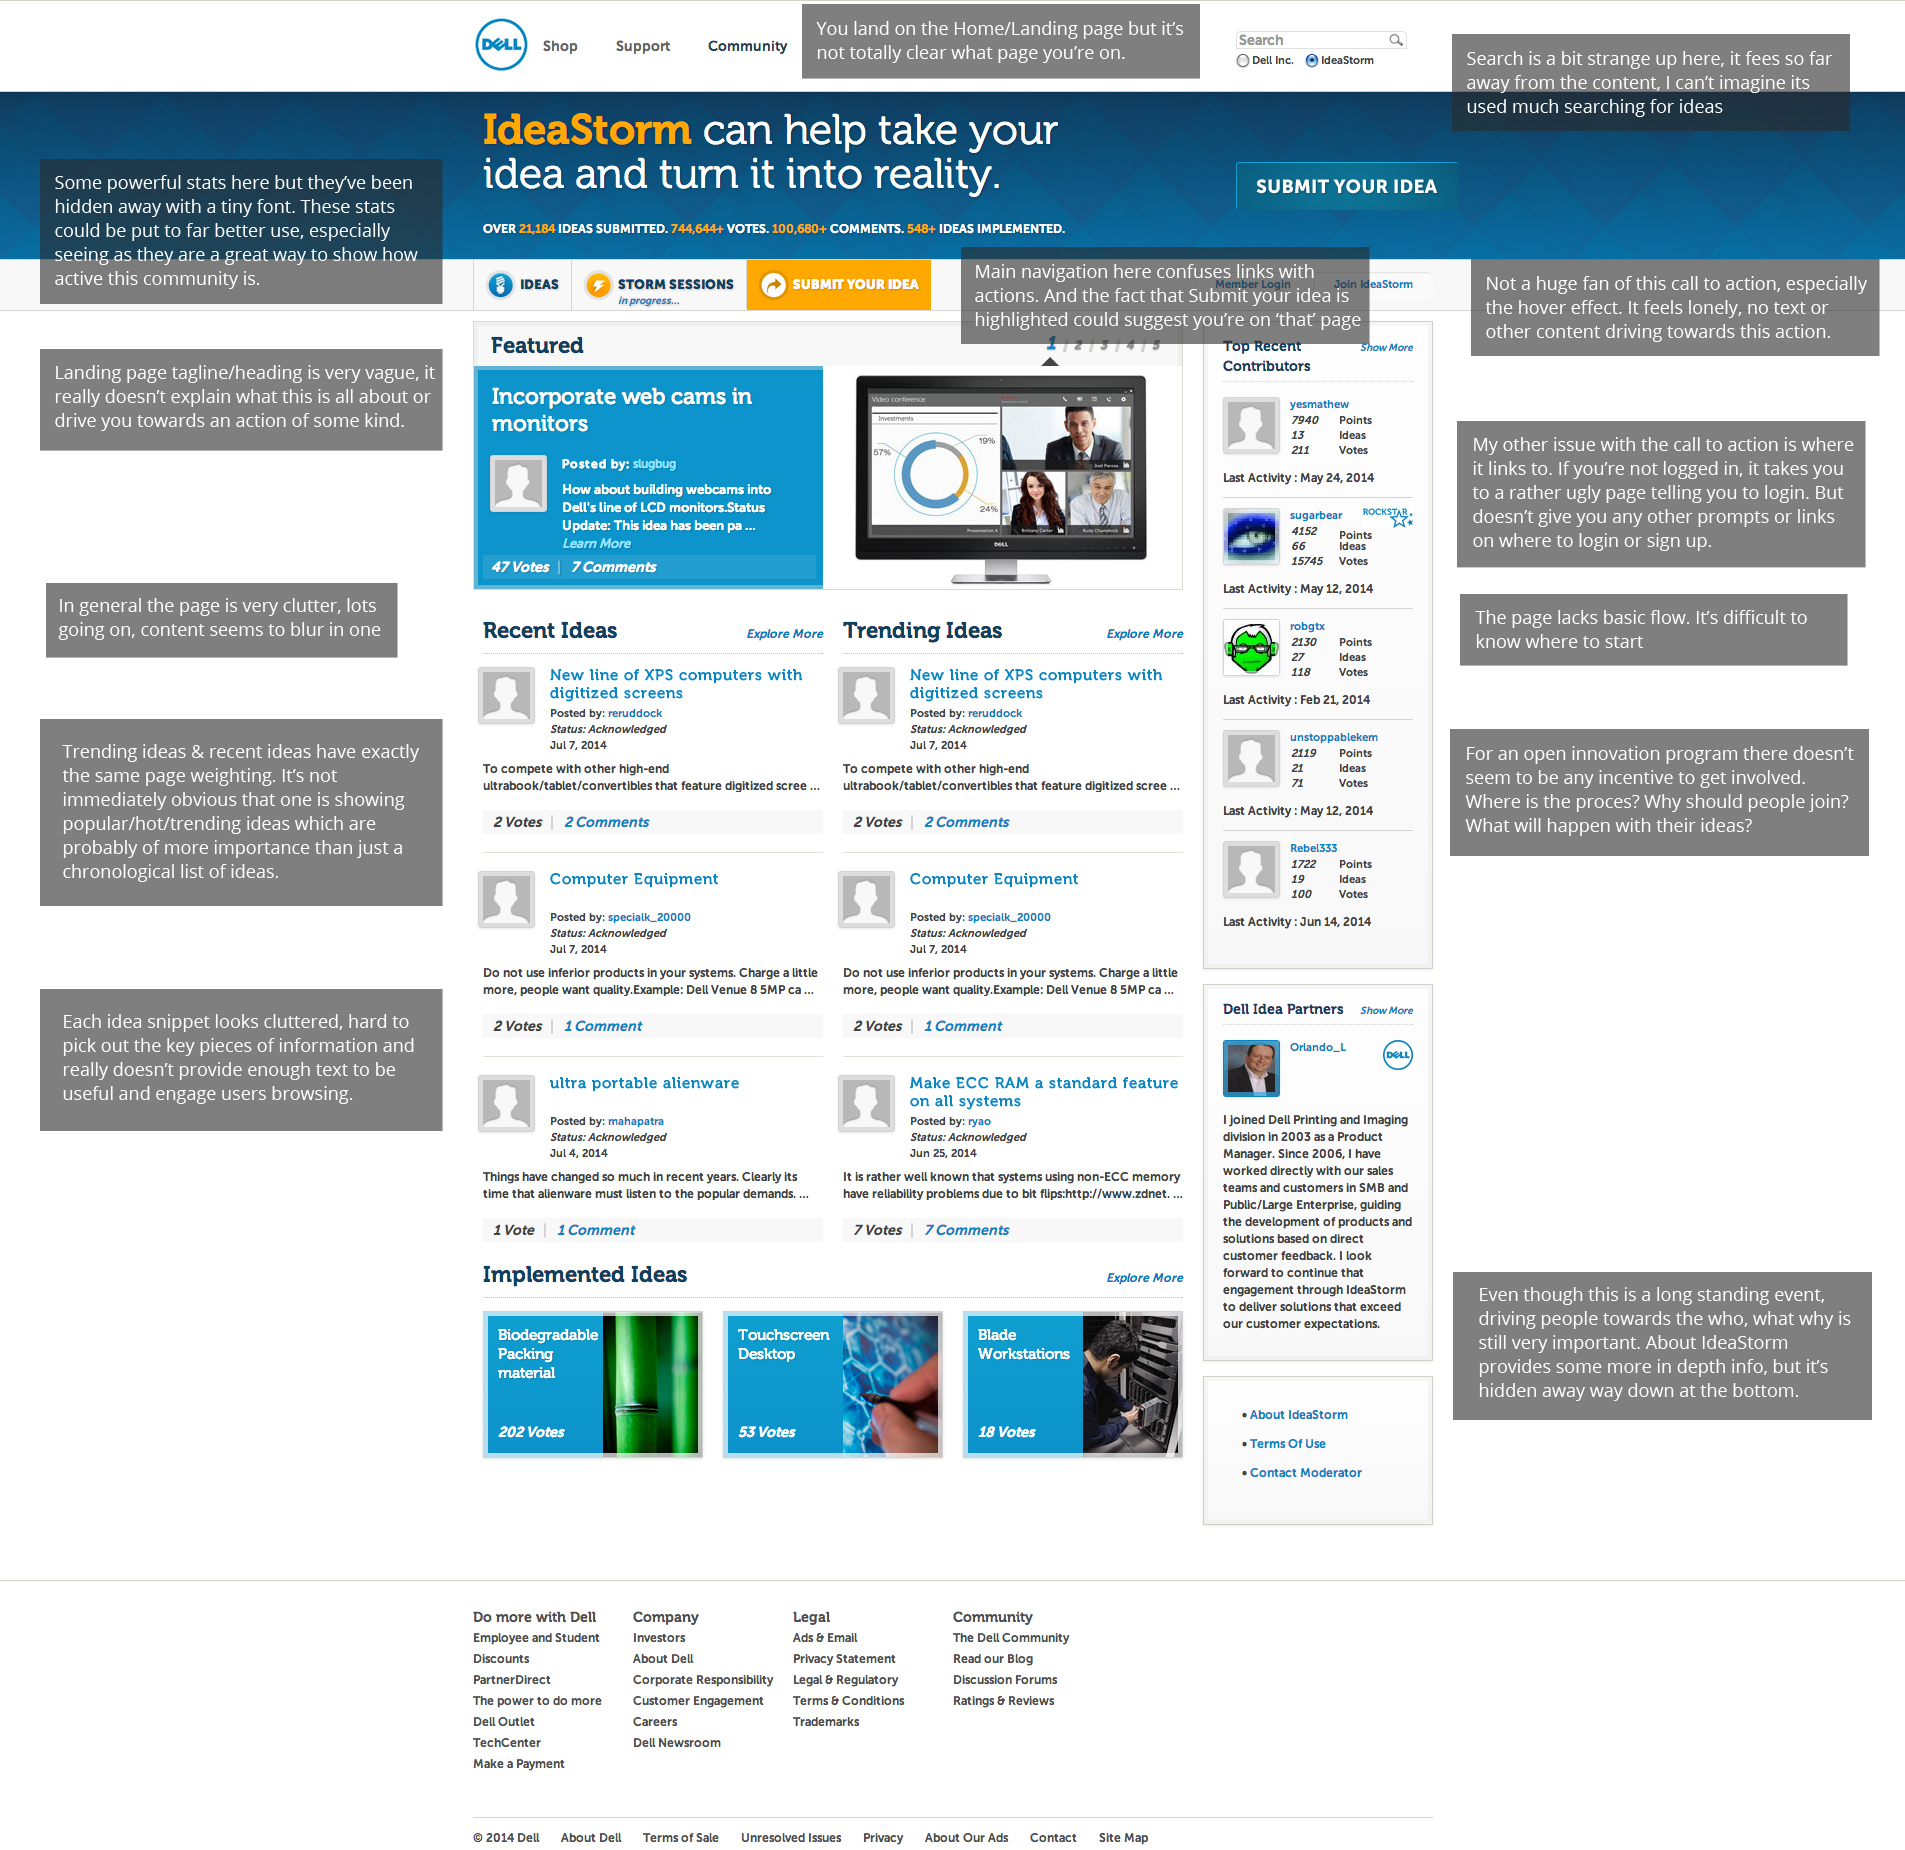 dell case study answers